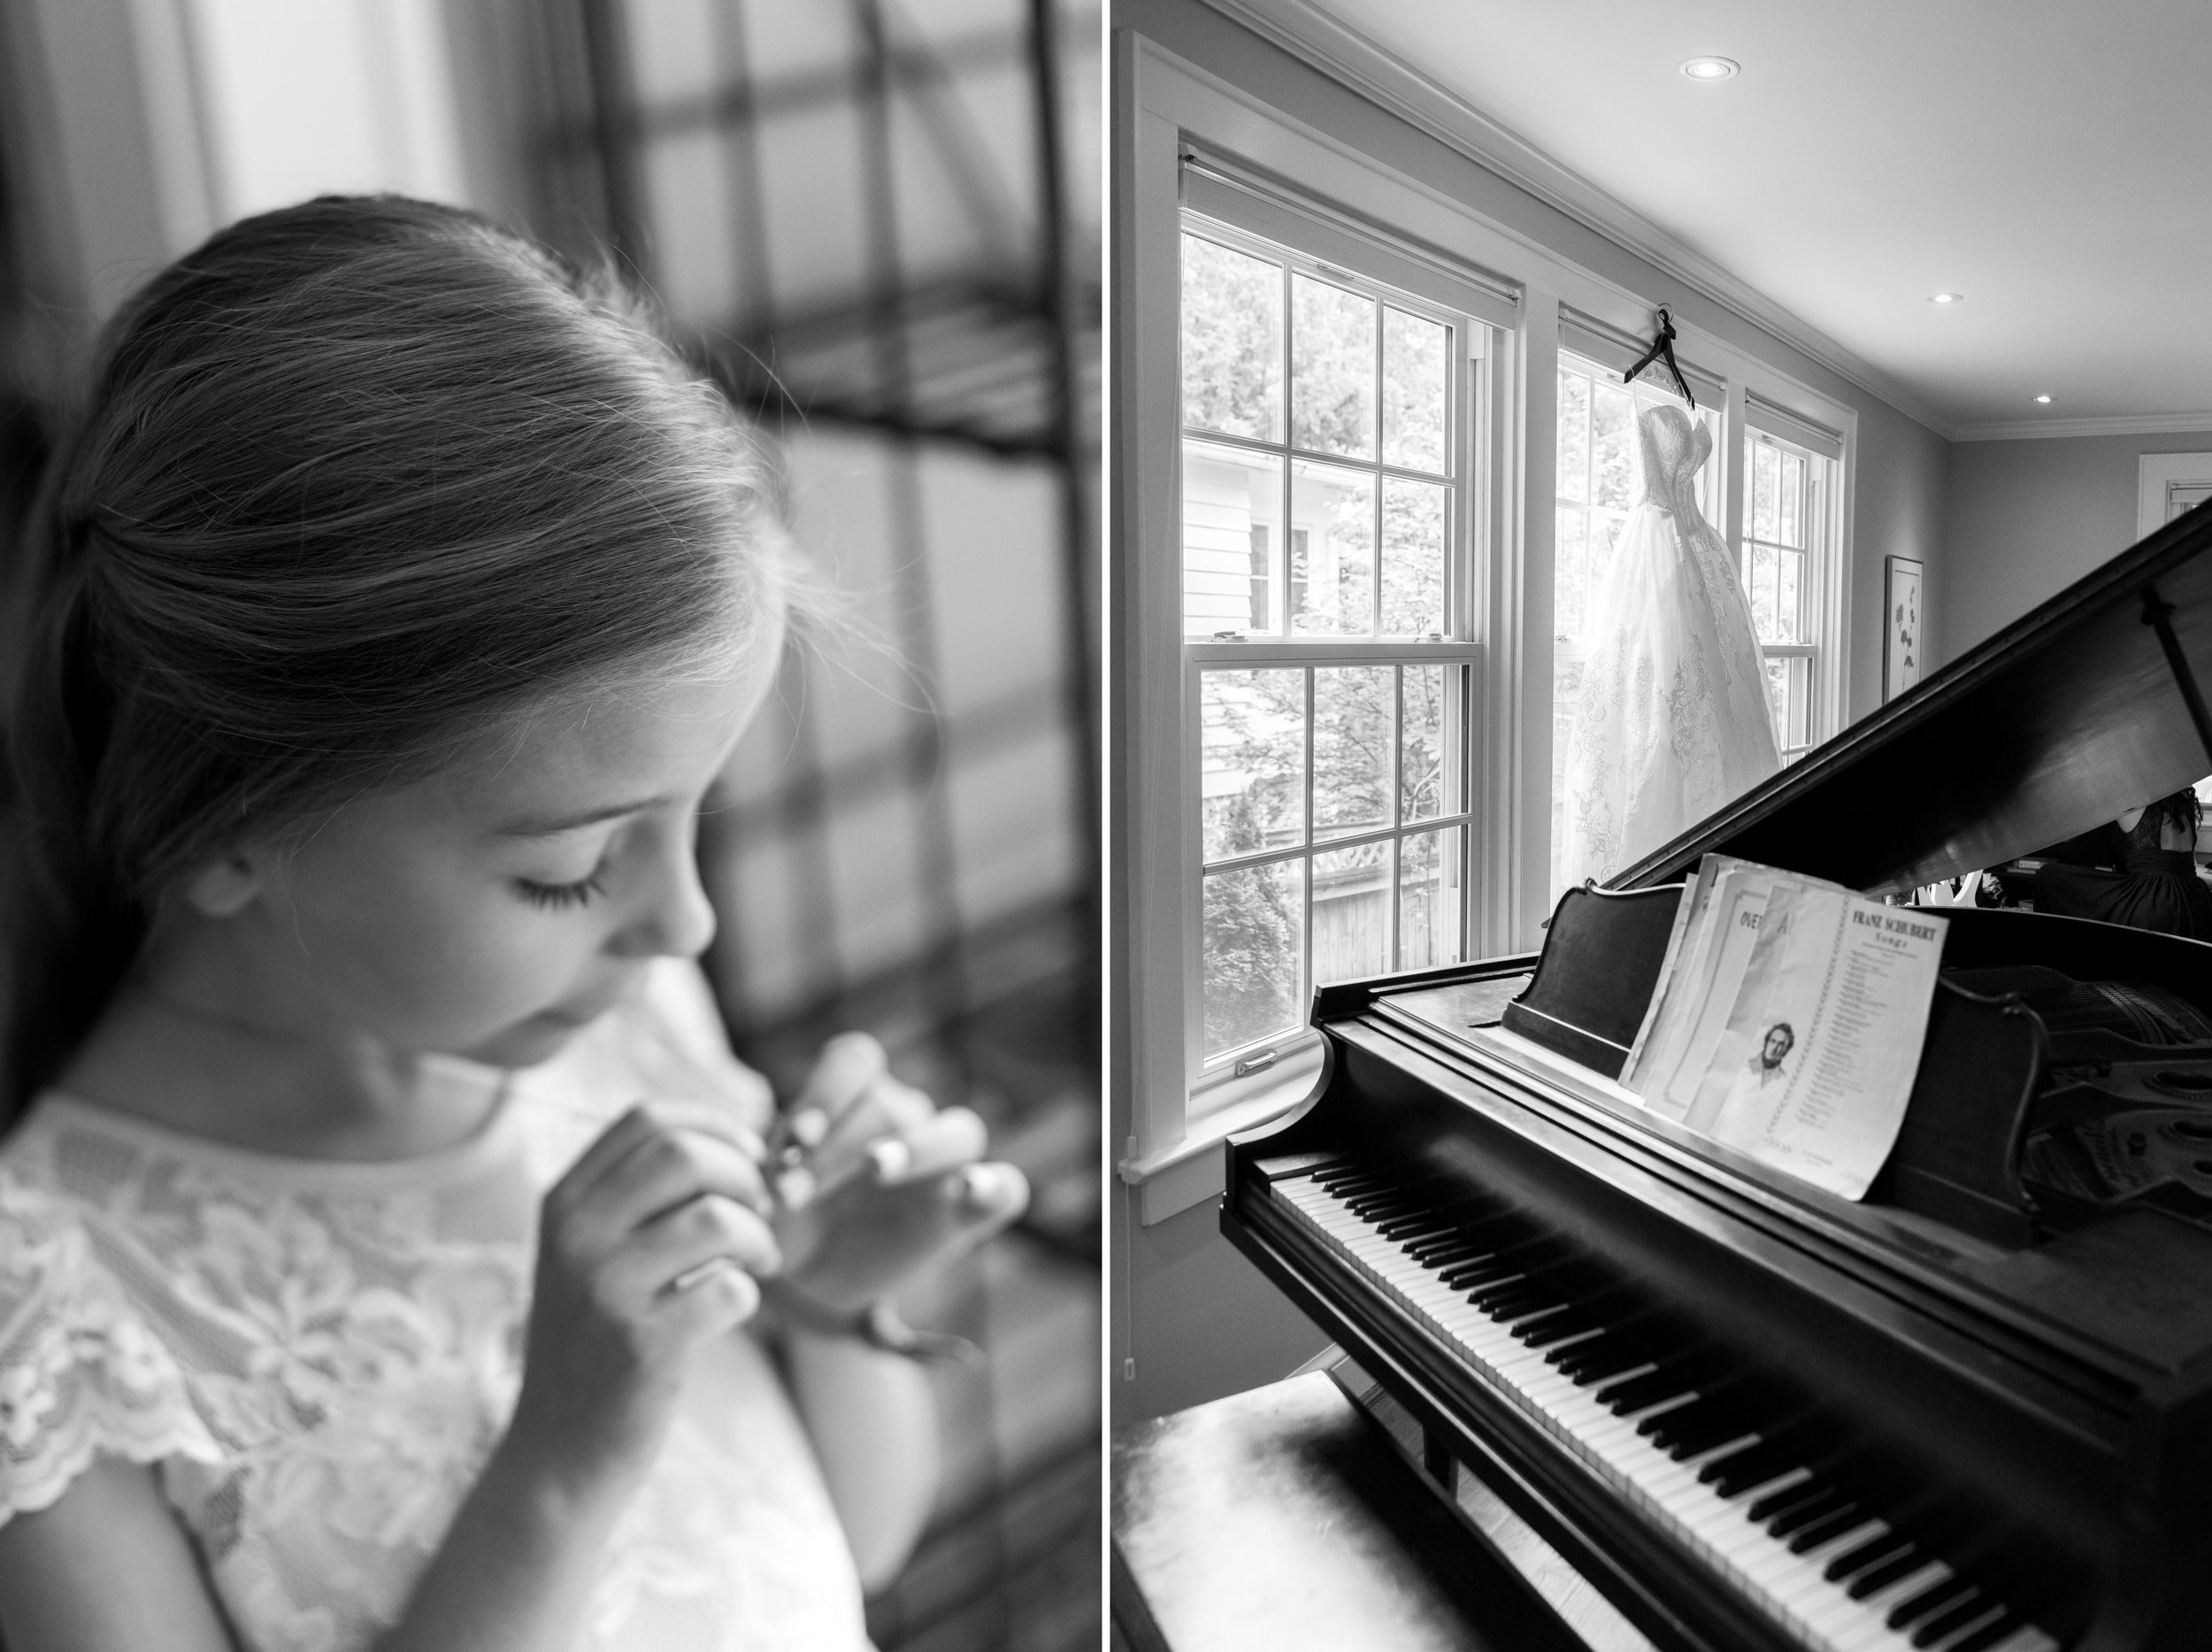 Wedding day at All Saints Church in Chevy Chase